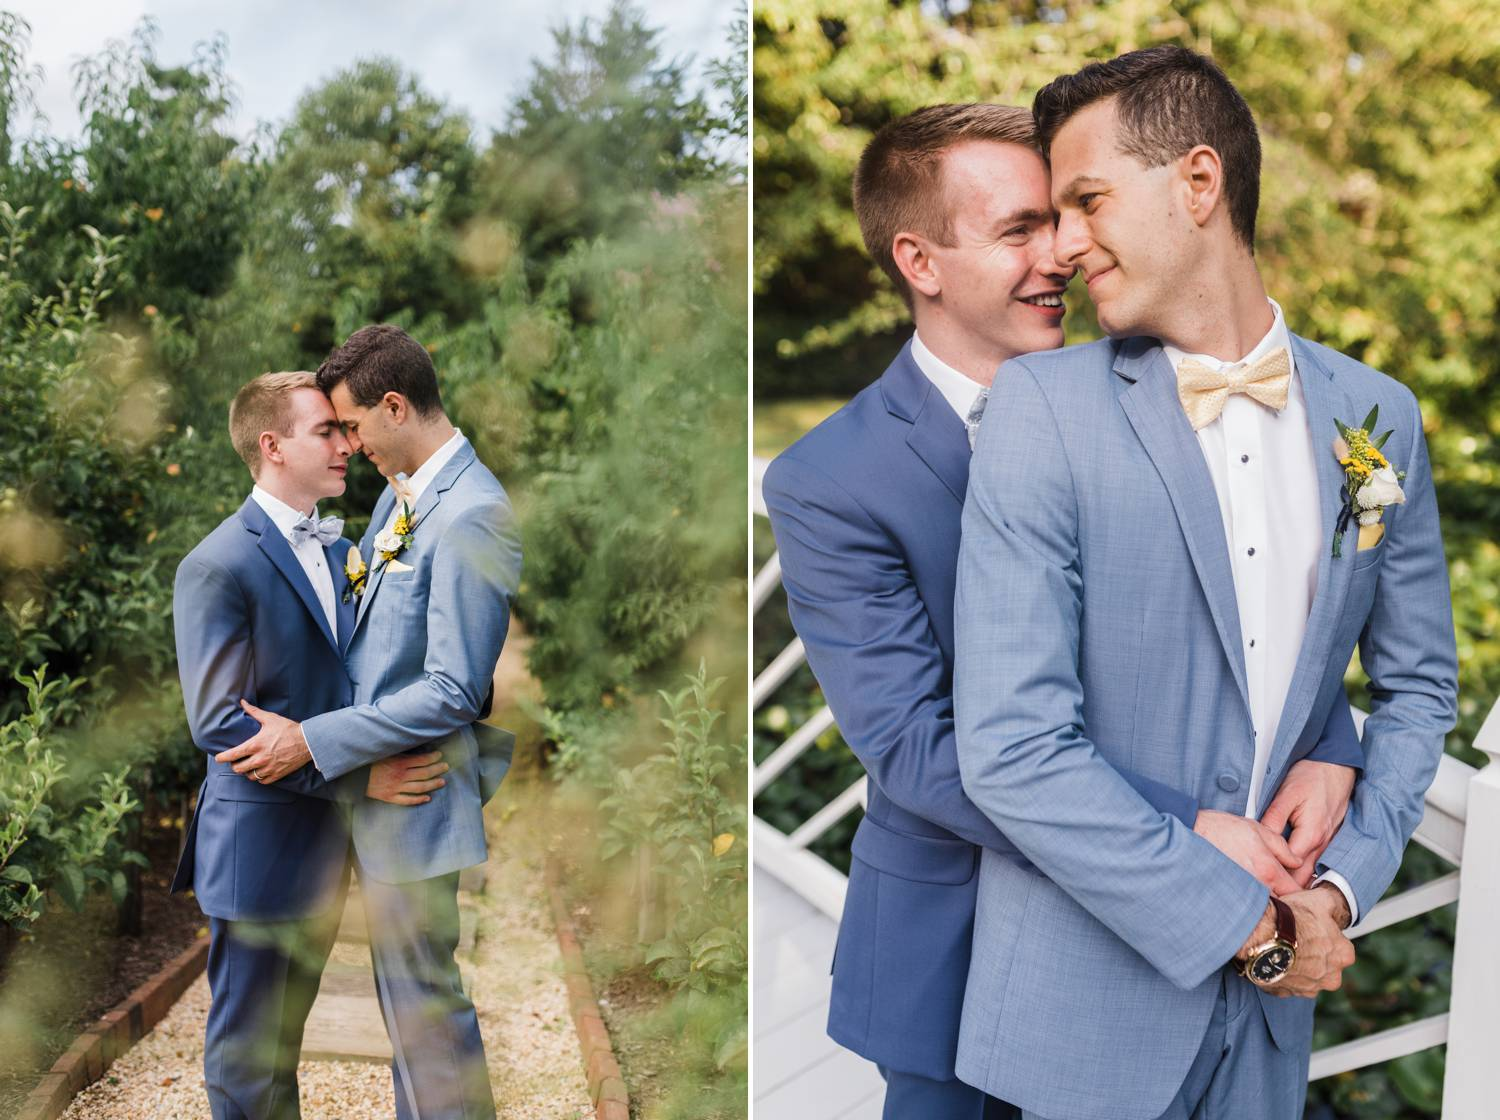 Two grooms wearing gray suits stand with their foreheads together